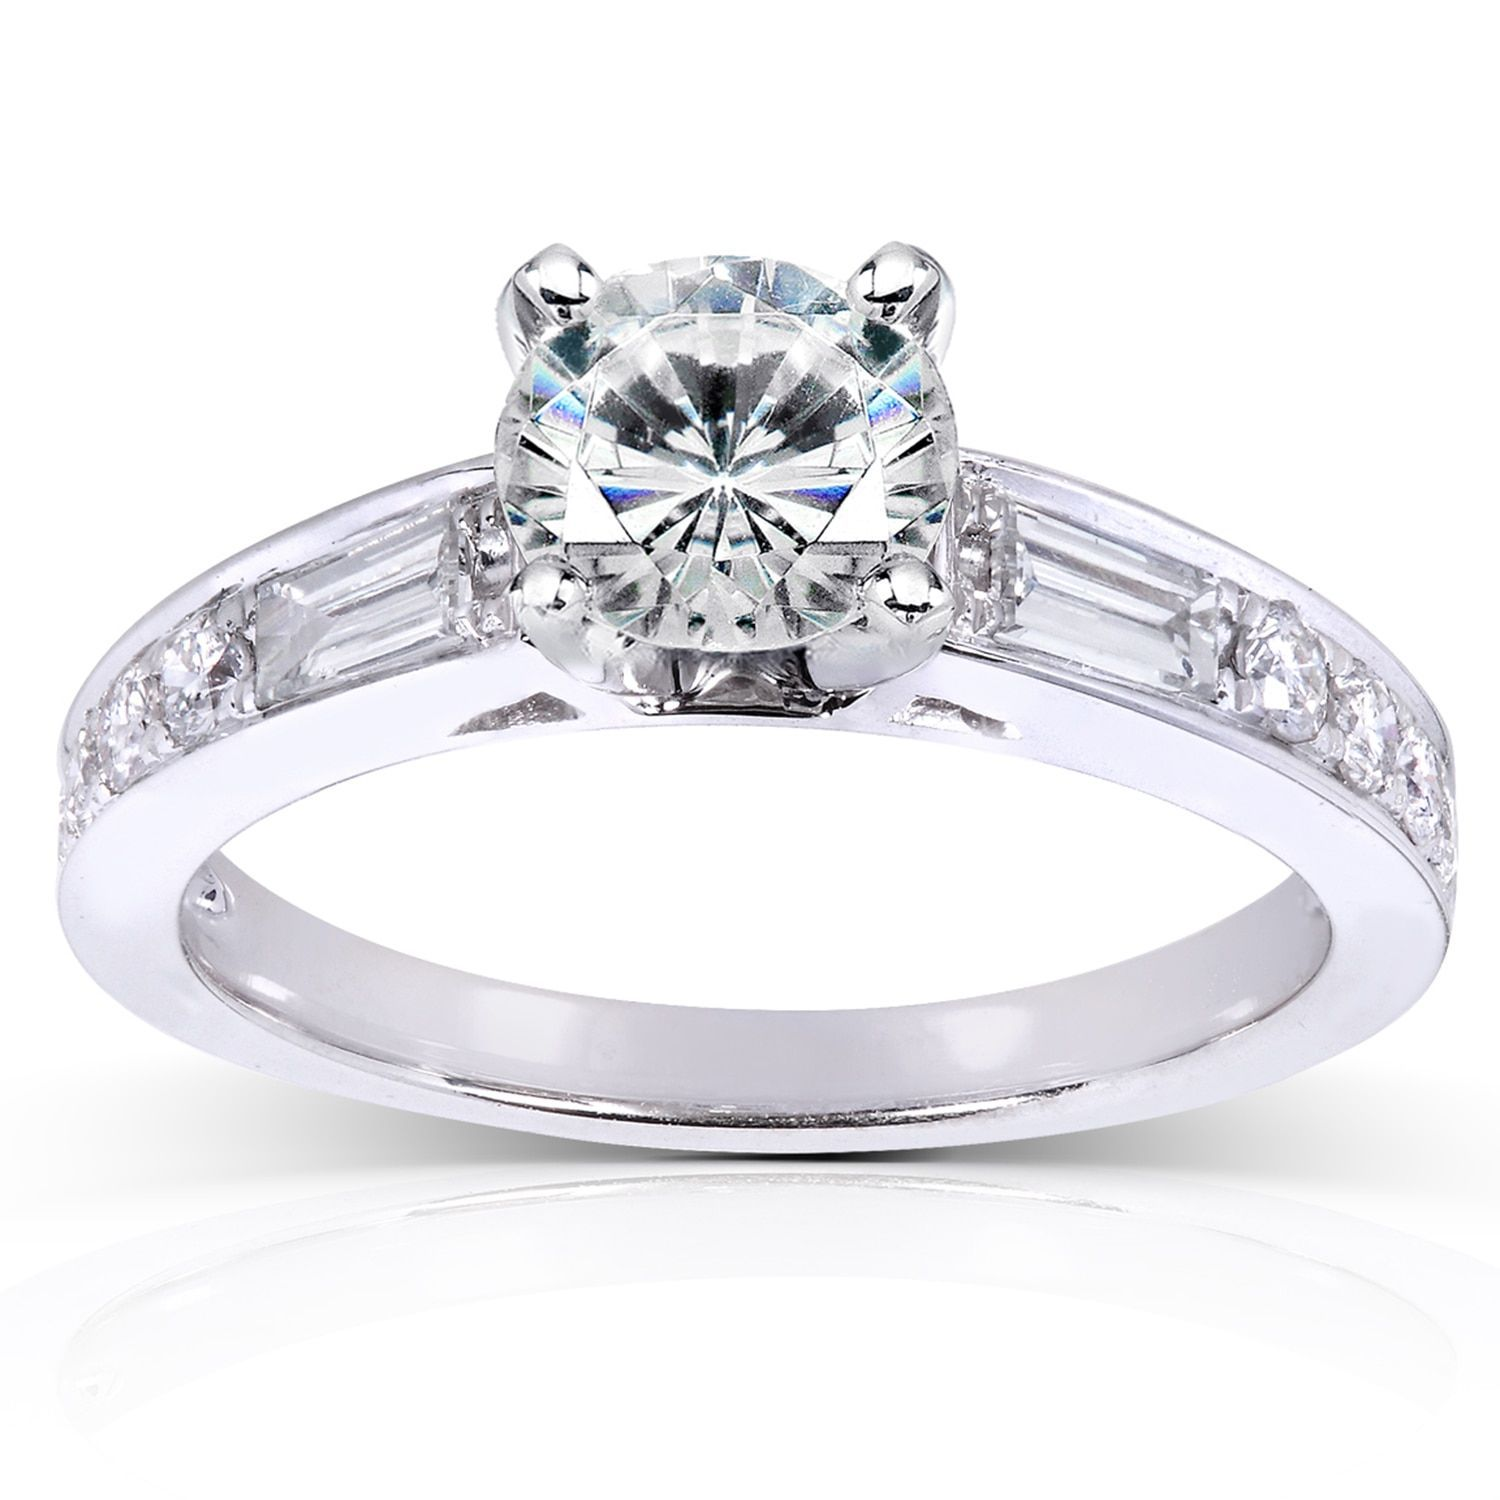 Annello by Kobelli 14k Gold 1 1/2ct TGW Round Moissanite and Mixed-cut Diamonds Engagement Ring